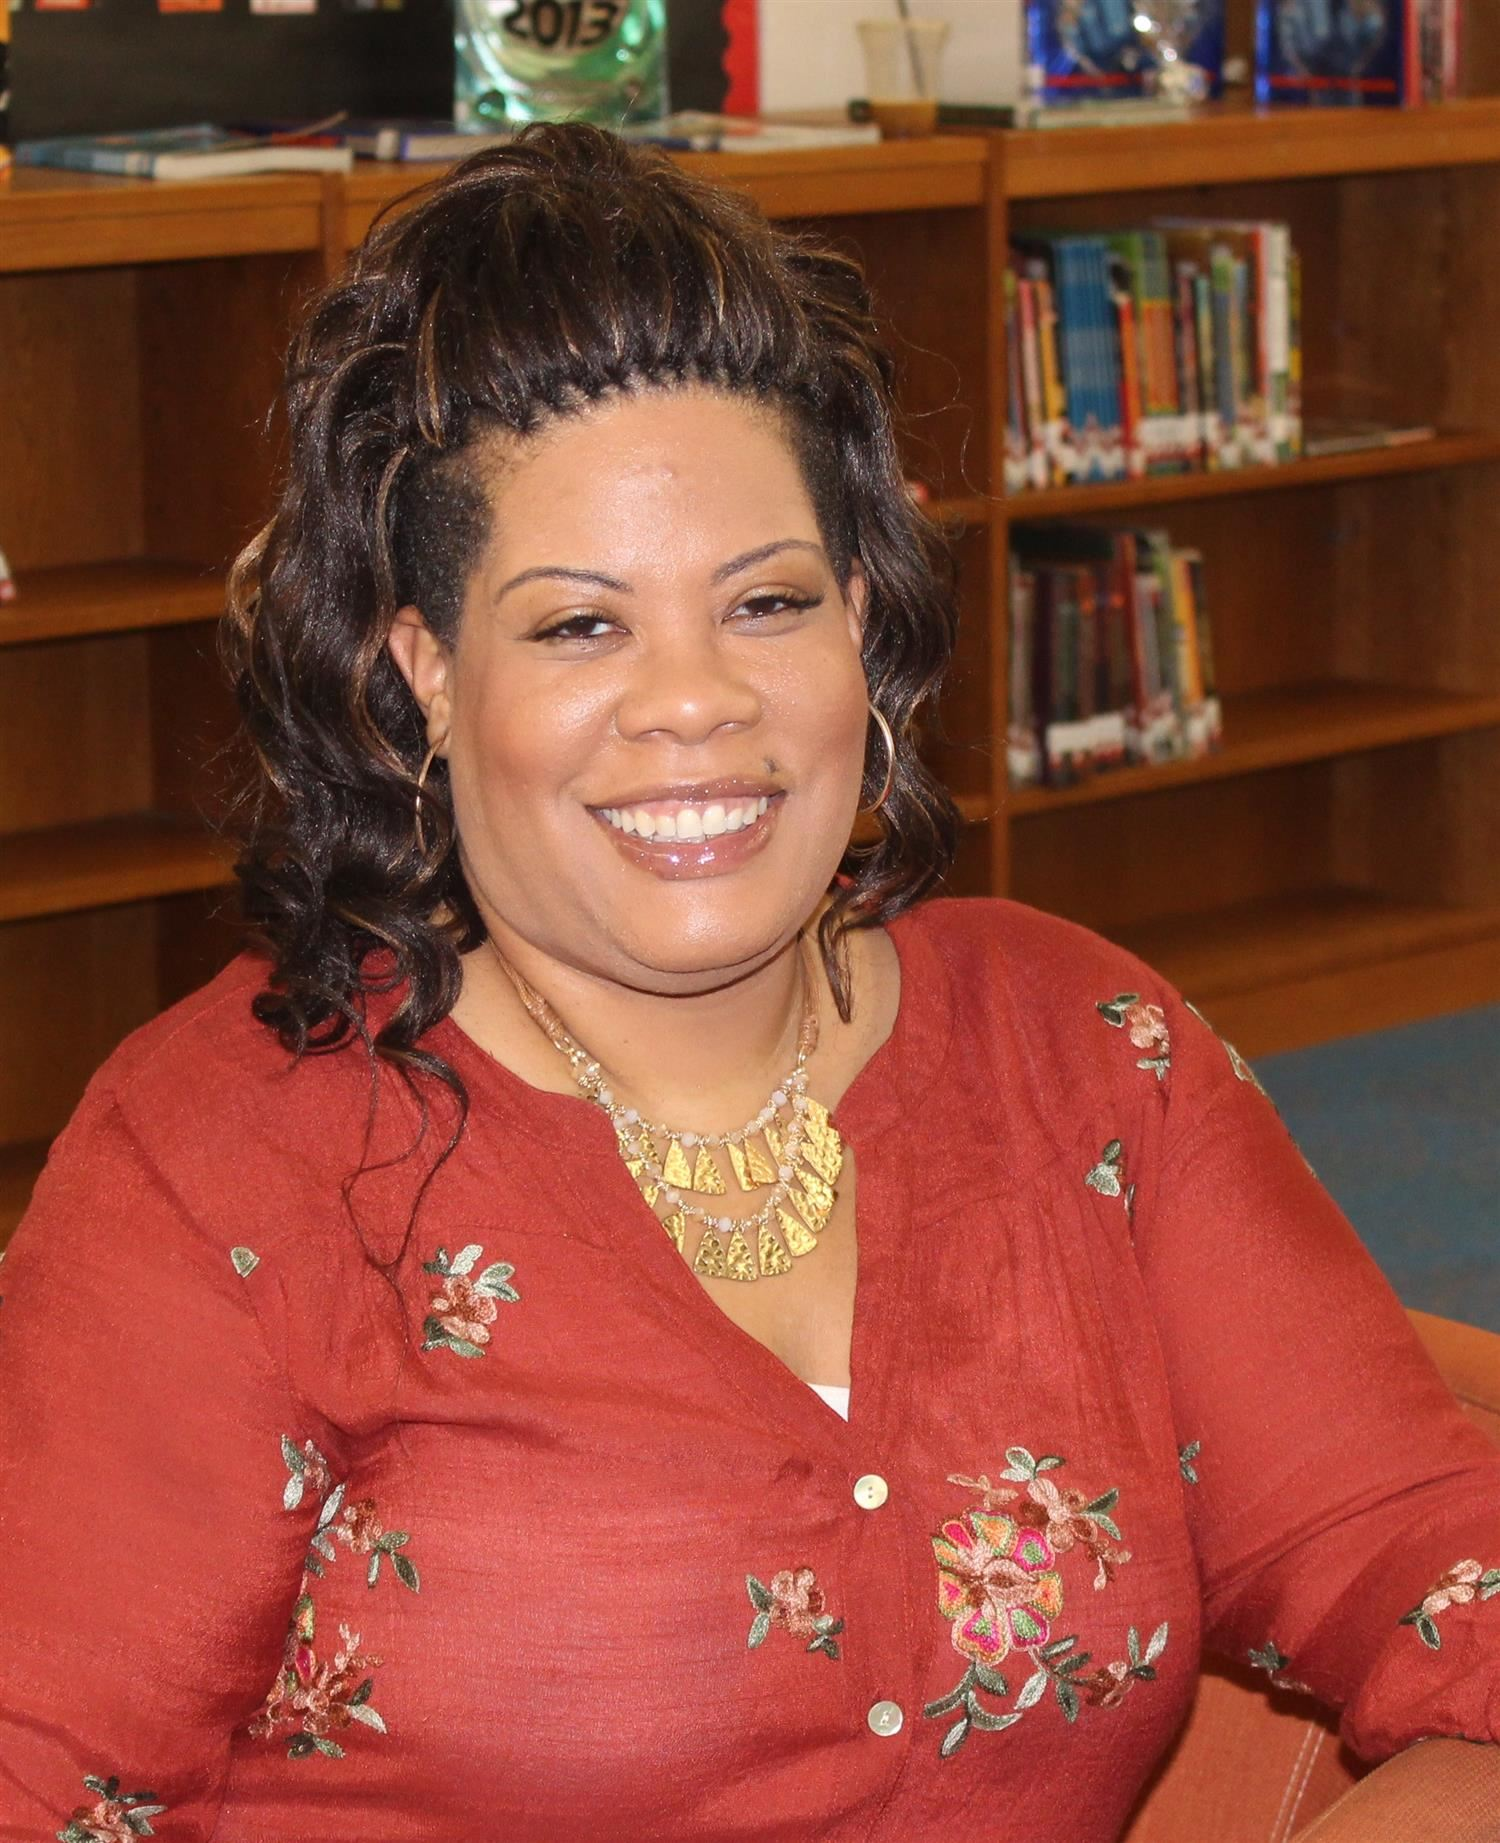 Ms. Cole, Student Support Services